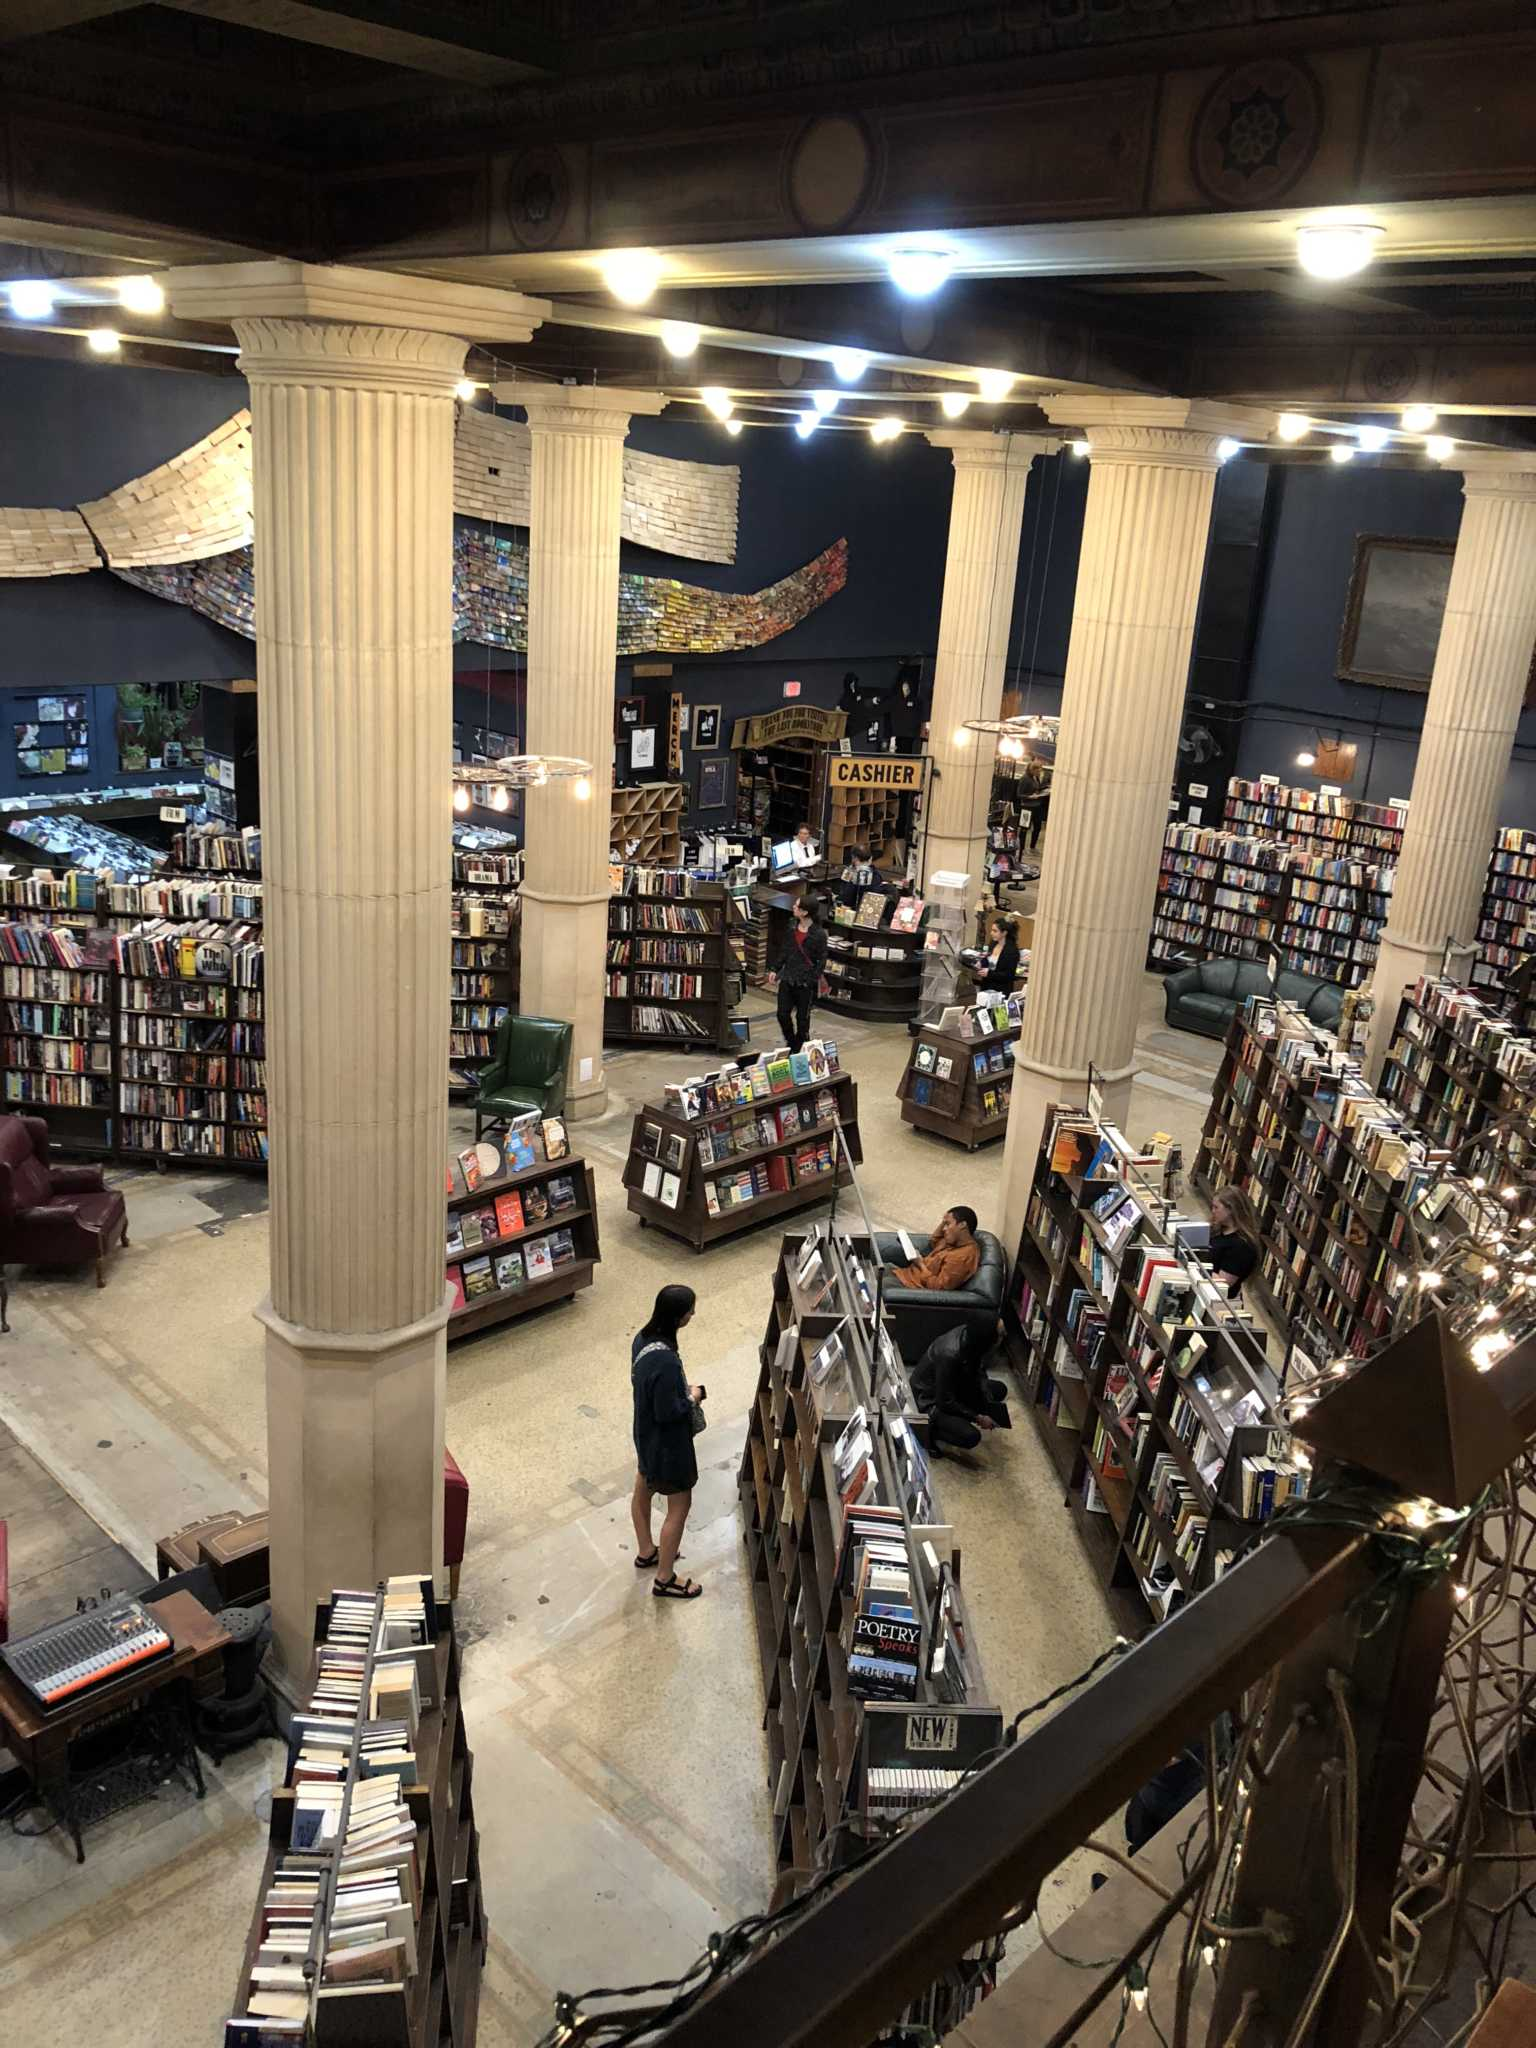 Los Angeles bookstore